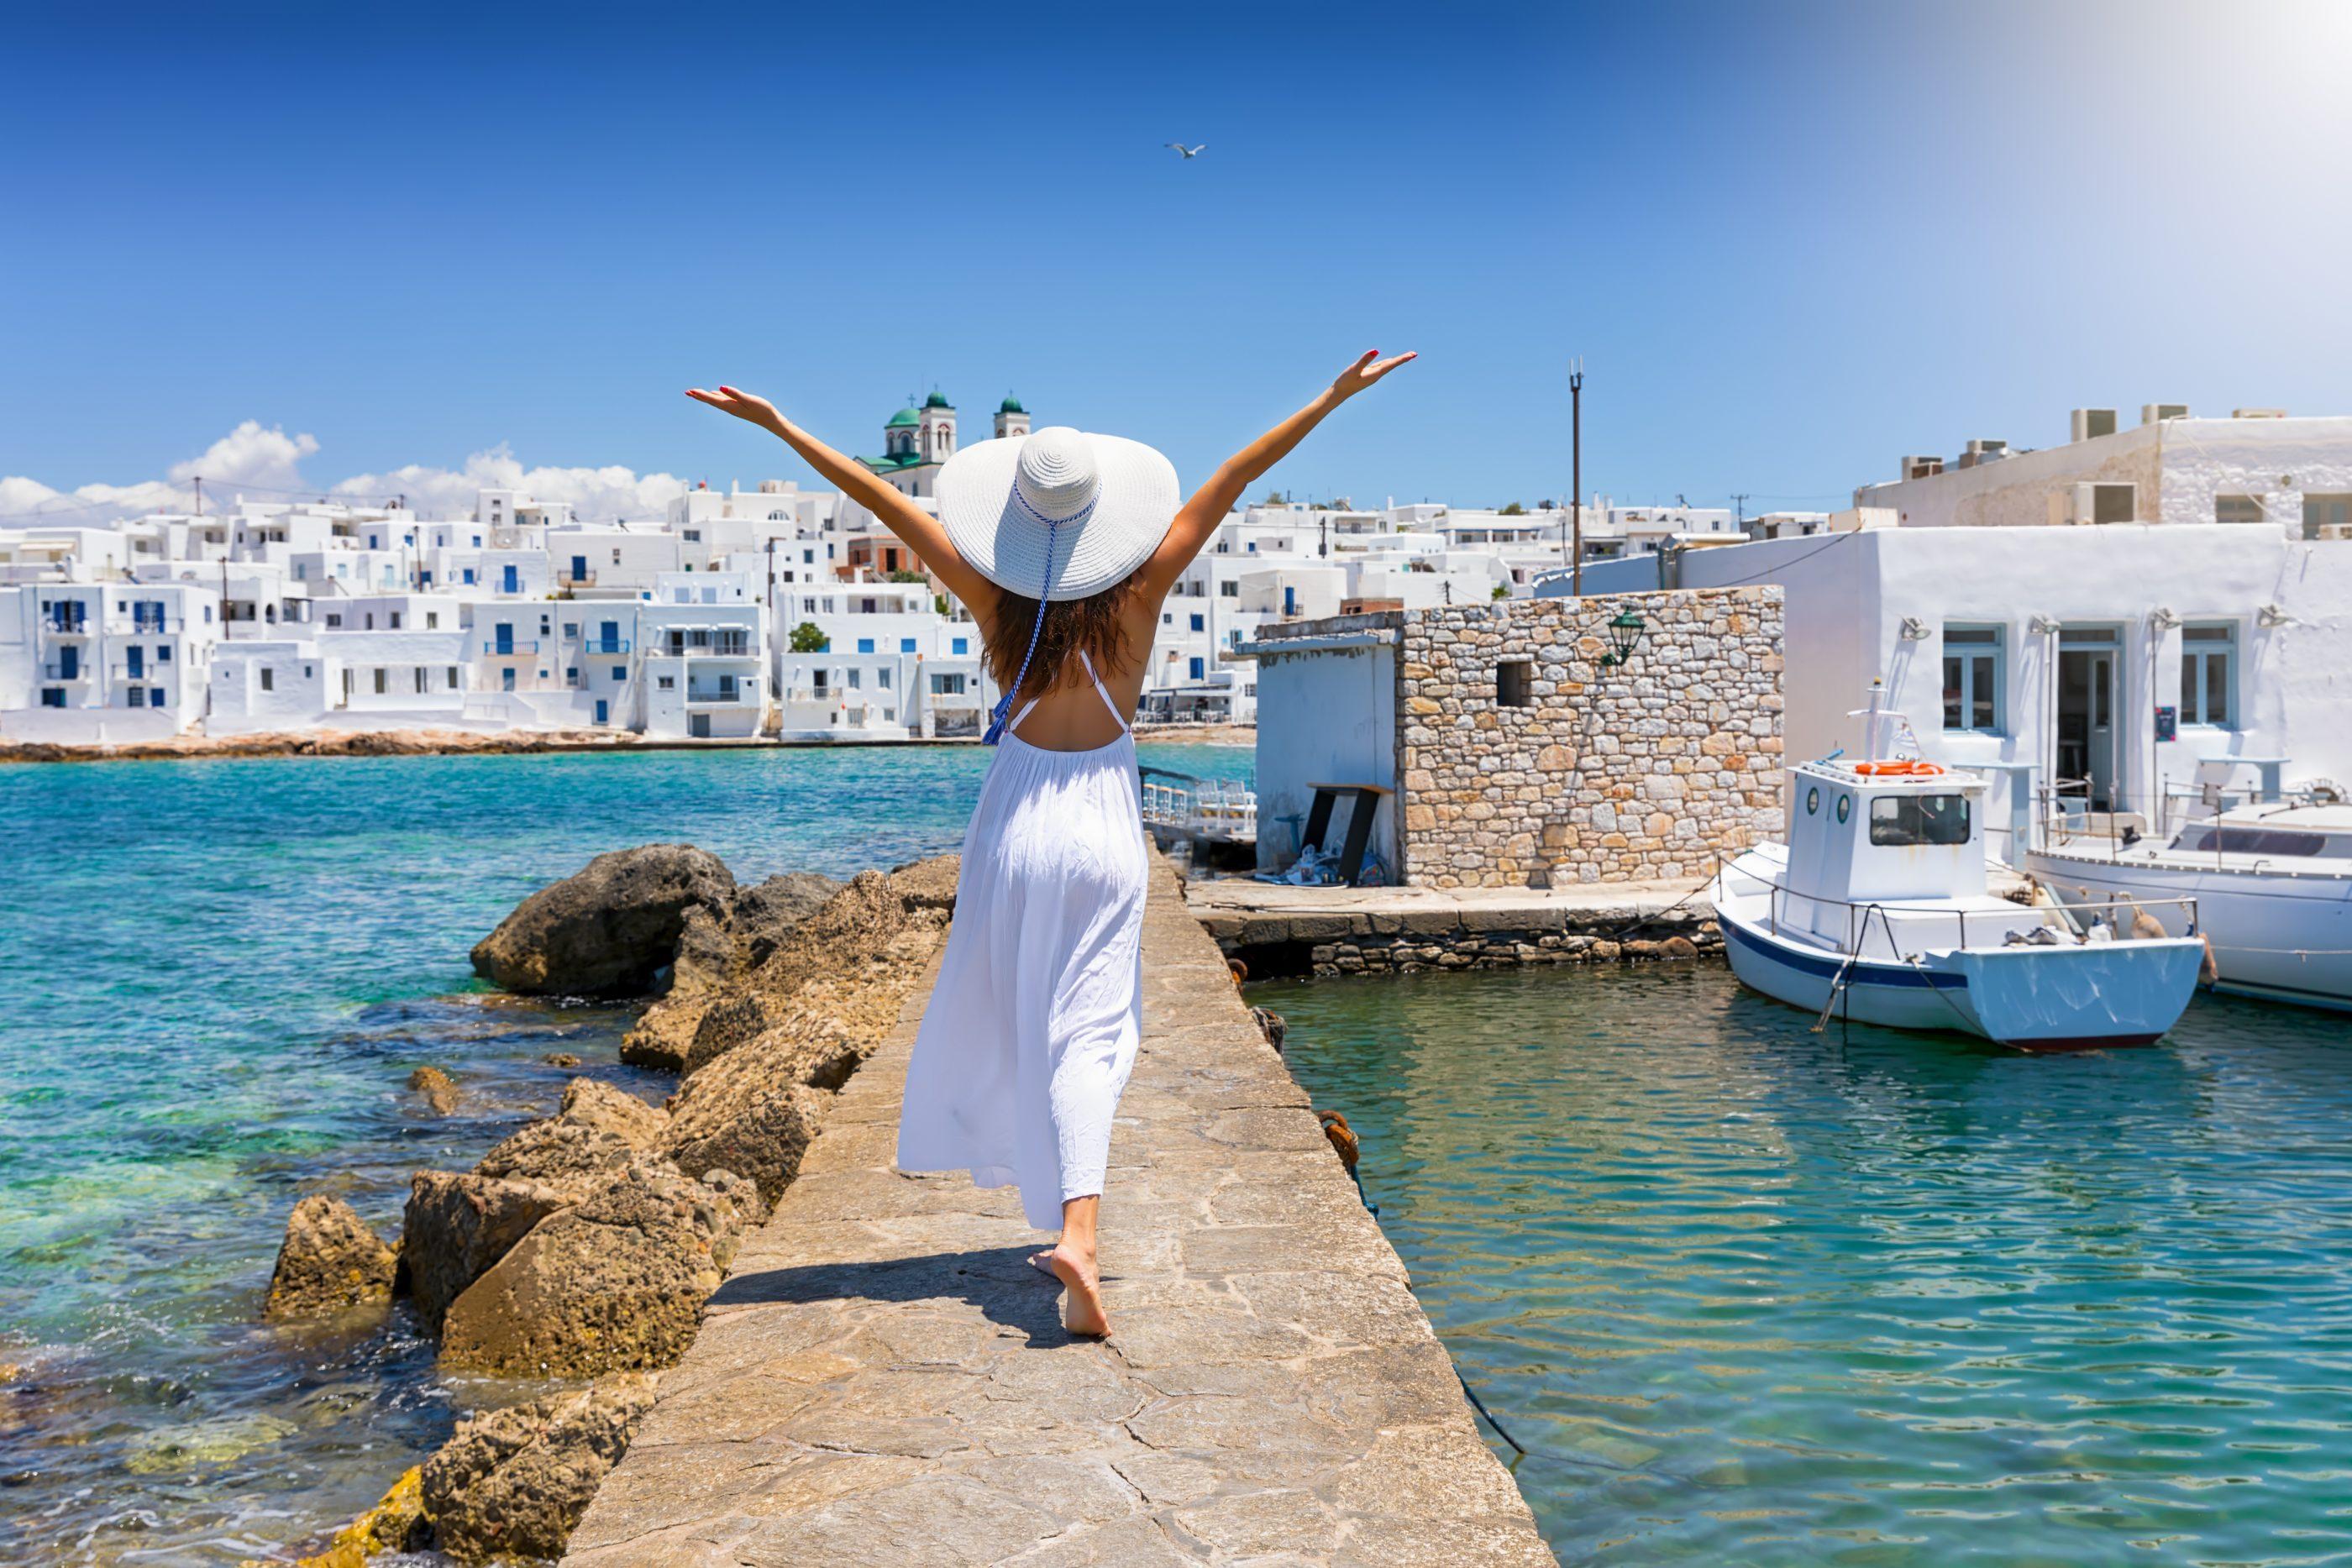 happy lady traveler overlooking greek town and marina off luxury yacht charter vacation